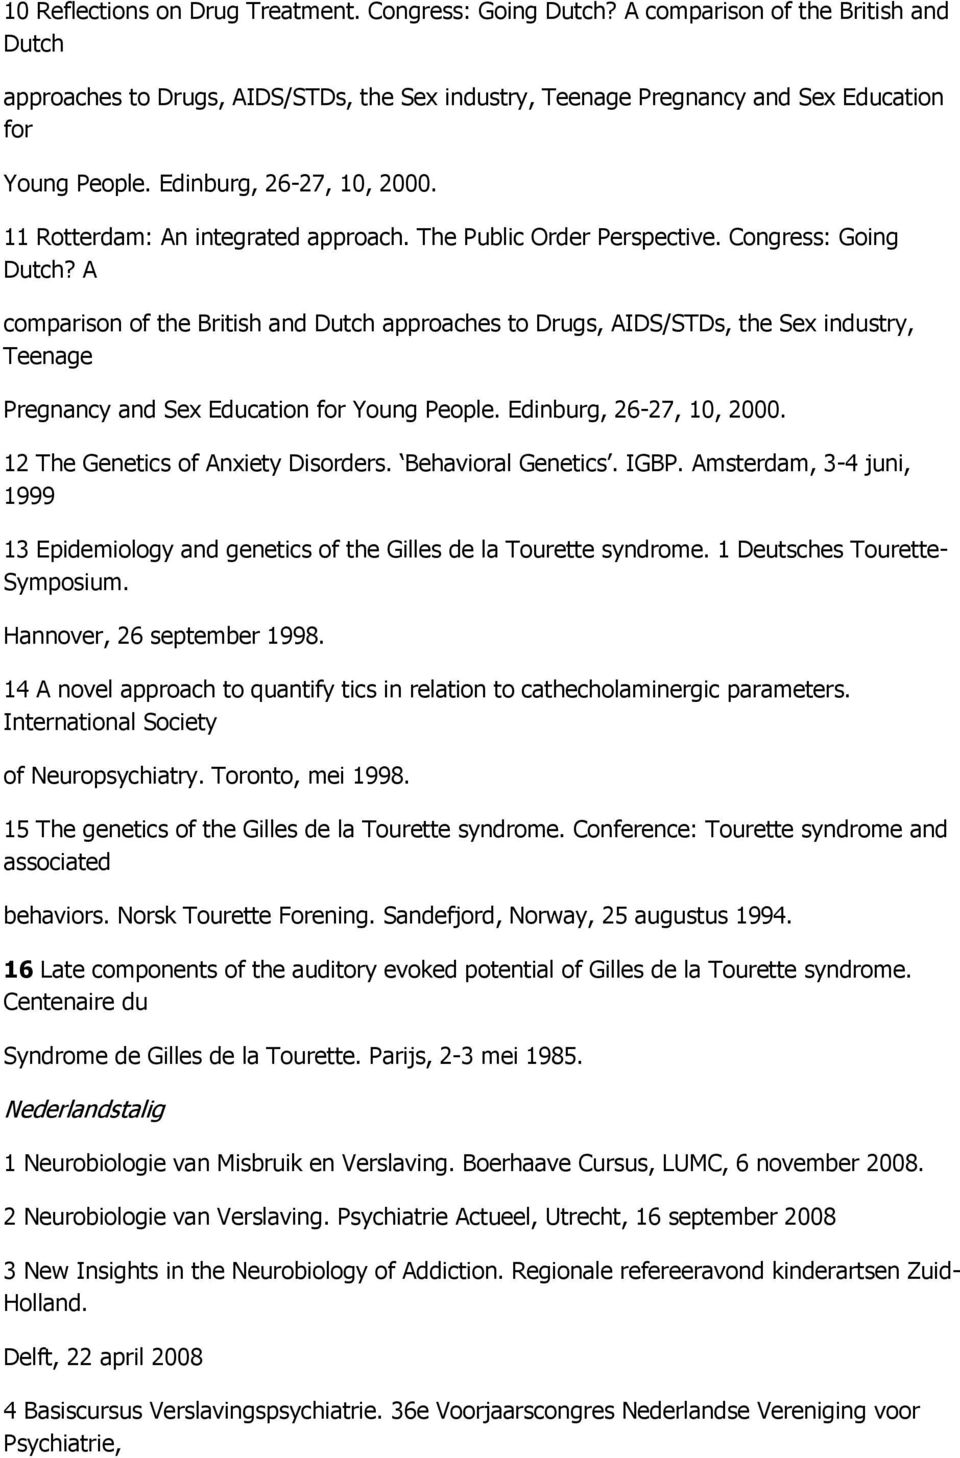 A comparison of the British and Dutch approaches to Drugs, AIDS/STDs, the Sex industry, Teenage Pregnancy and Sex Education for Young People. Edinburg, 26-27, 10, 2000.